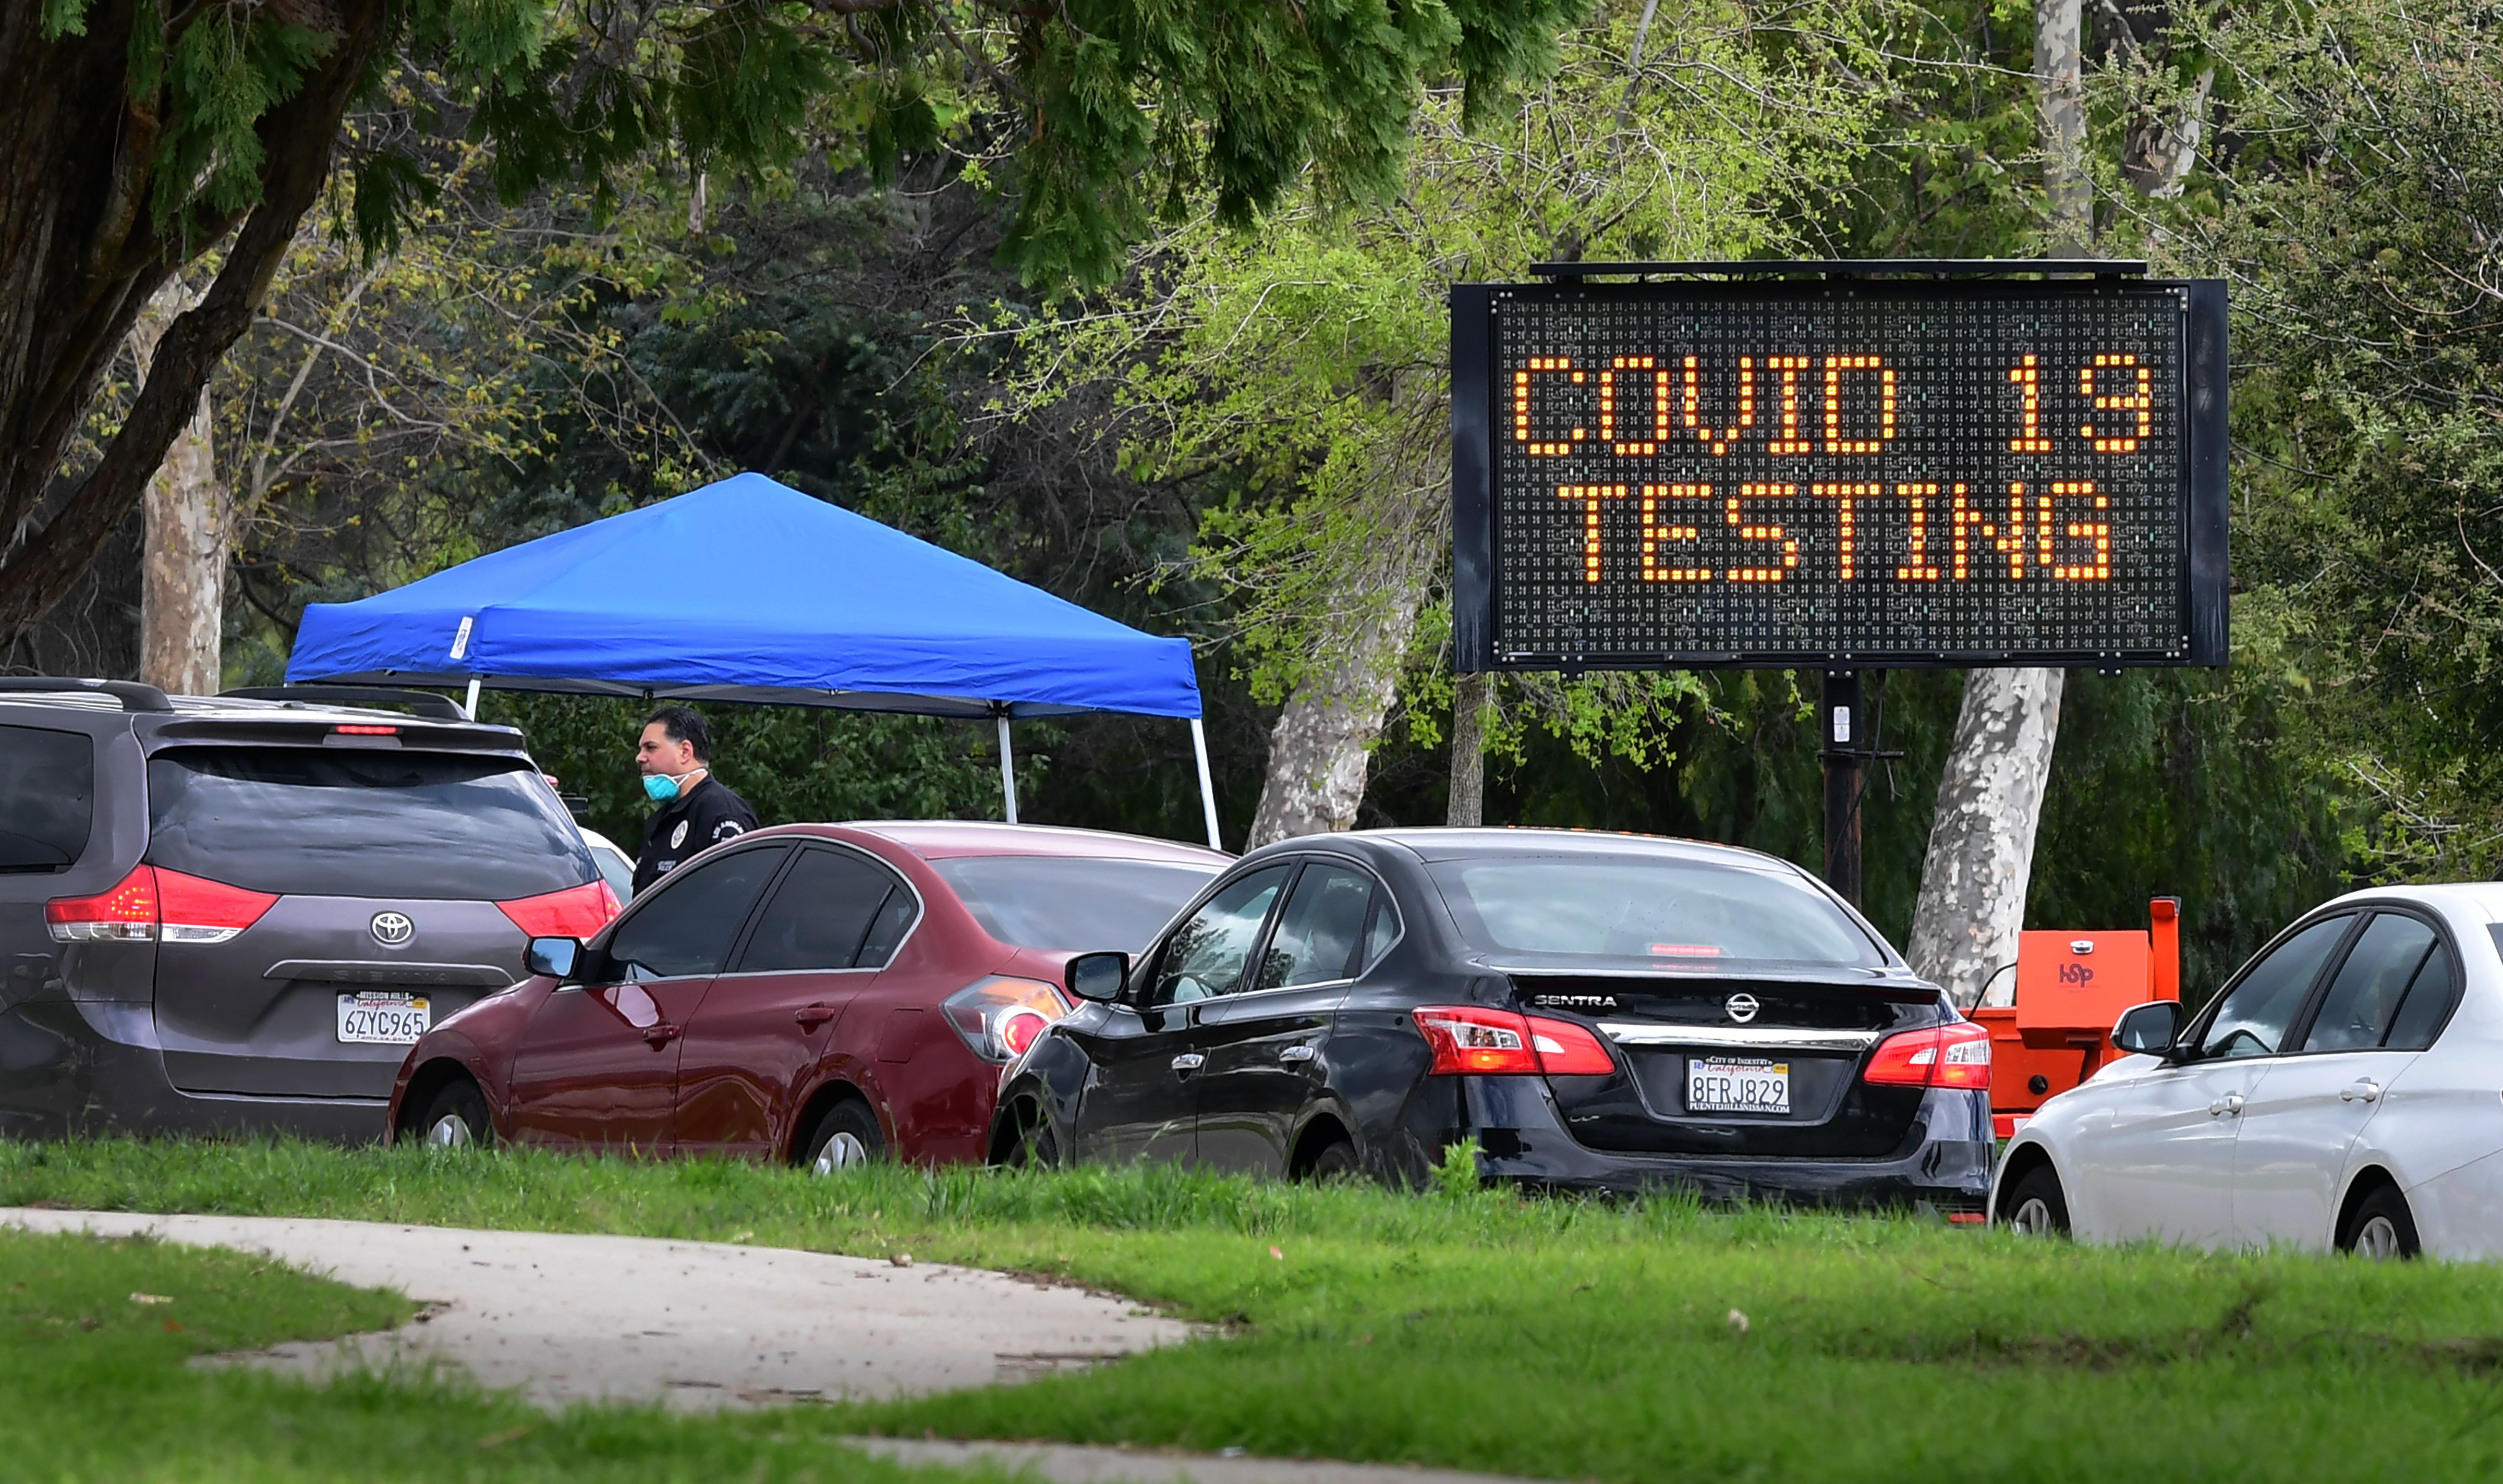 - A police officer mans the entrance to a coronavirus (COVID-19) testing center in Hansen Dam Park on March 25, 2020 in Pacoima, California. - California, the most populous US state, has been one of the worst-hit during the pandemic. At least 51 people have died, with more than 2,500 cases, according to a tally from Johns Hopkins University. (Photo by Frederic J. BROWN / AFP) (Photo by FREDERIC J. BROWN/AFP via Getty Images)